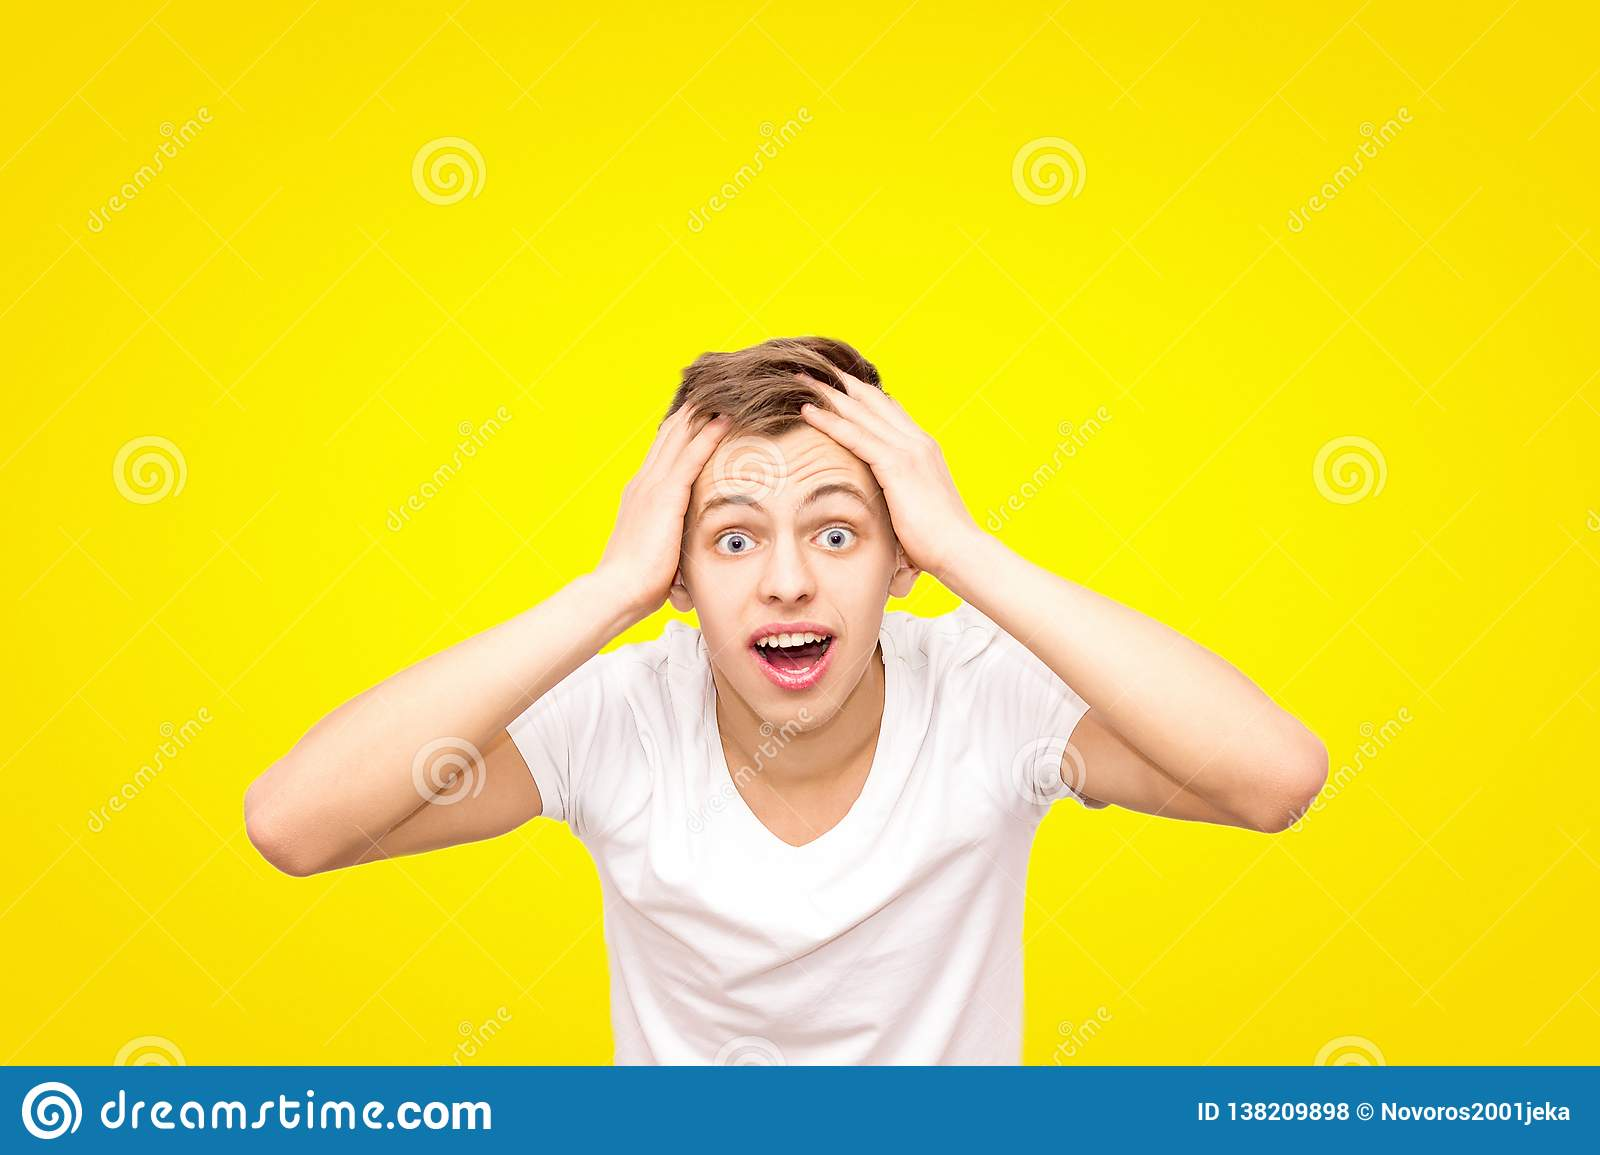 Guy in white in a white T-shirt holding his head, isolated on a yellow background